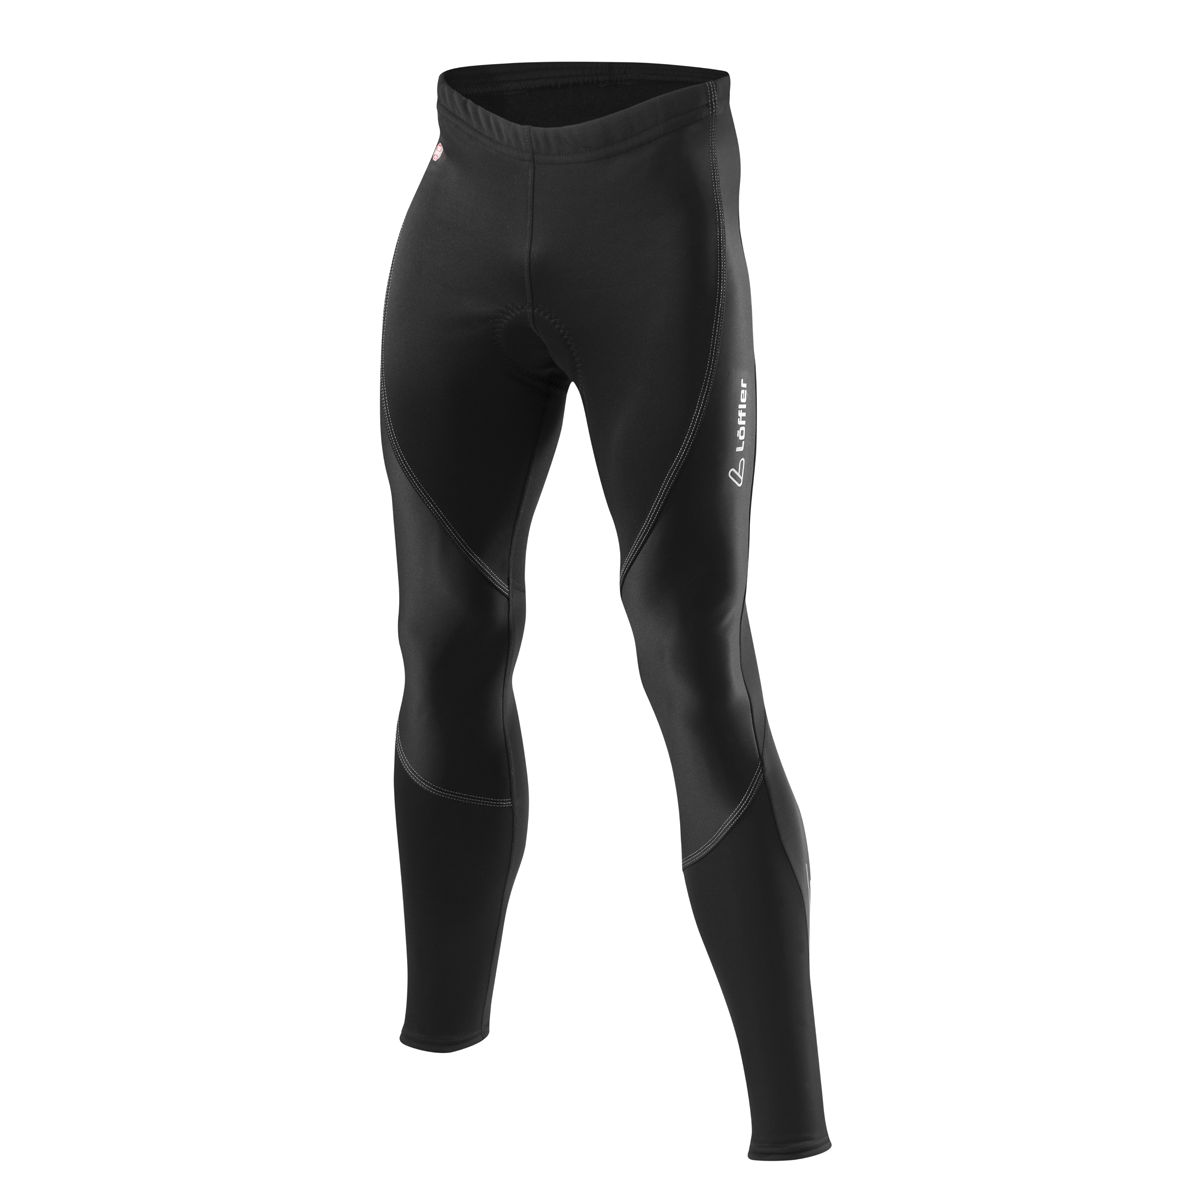 BIKE PANTS LONG WS SOFTSHELL WARM (MS) cycling tights